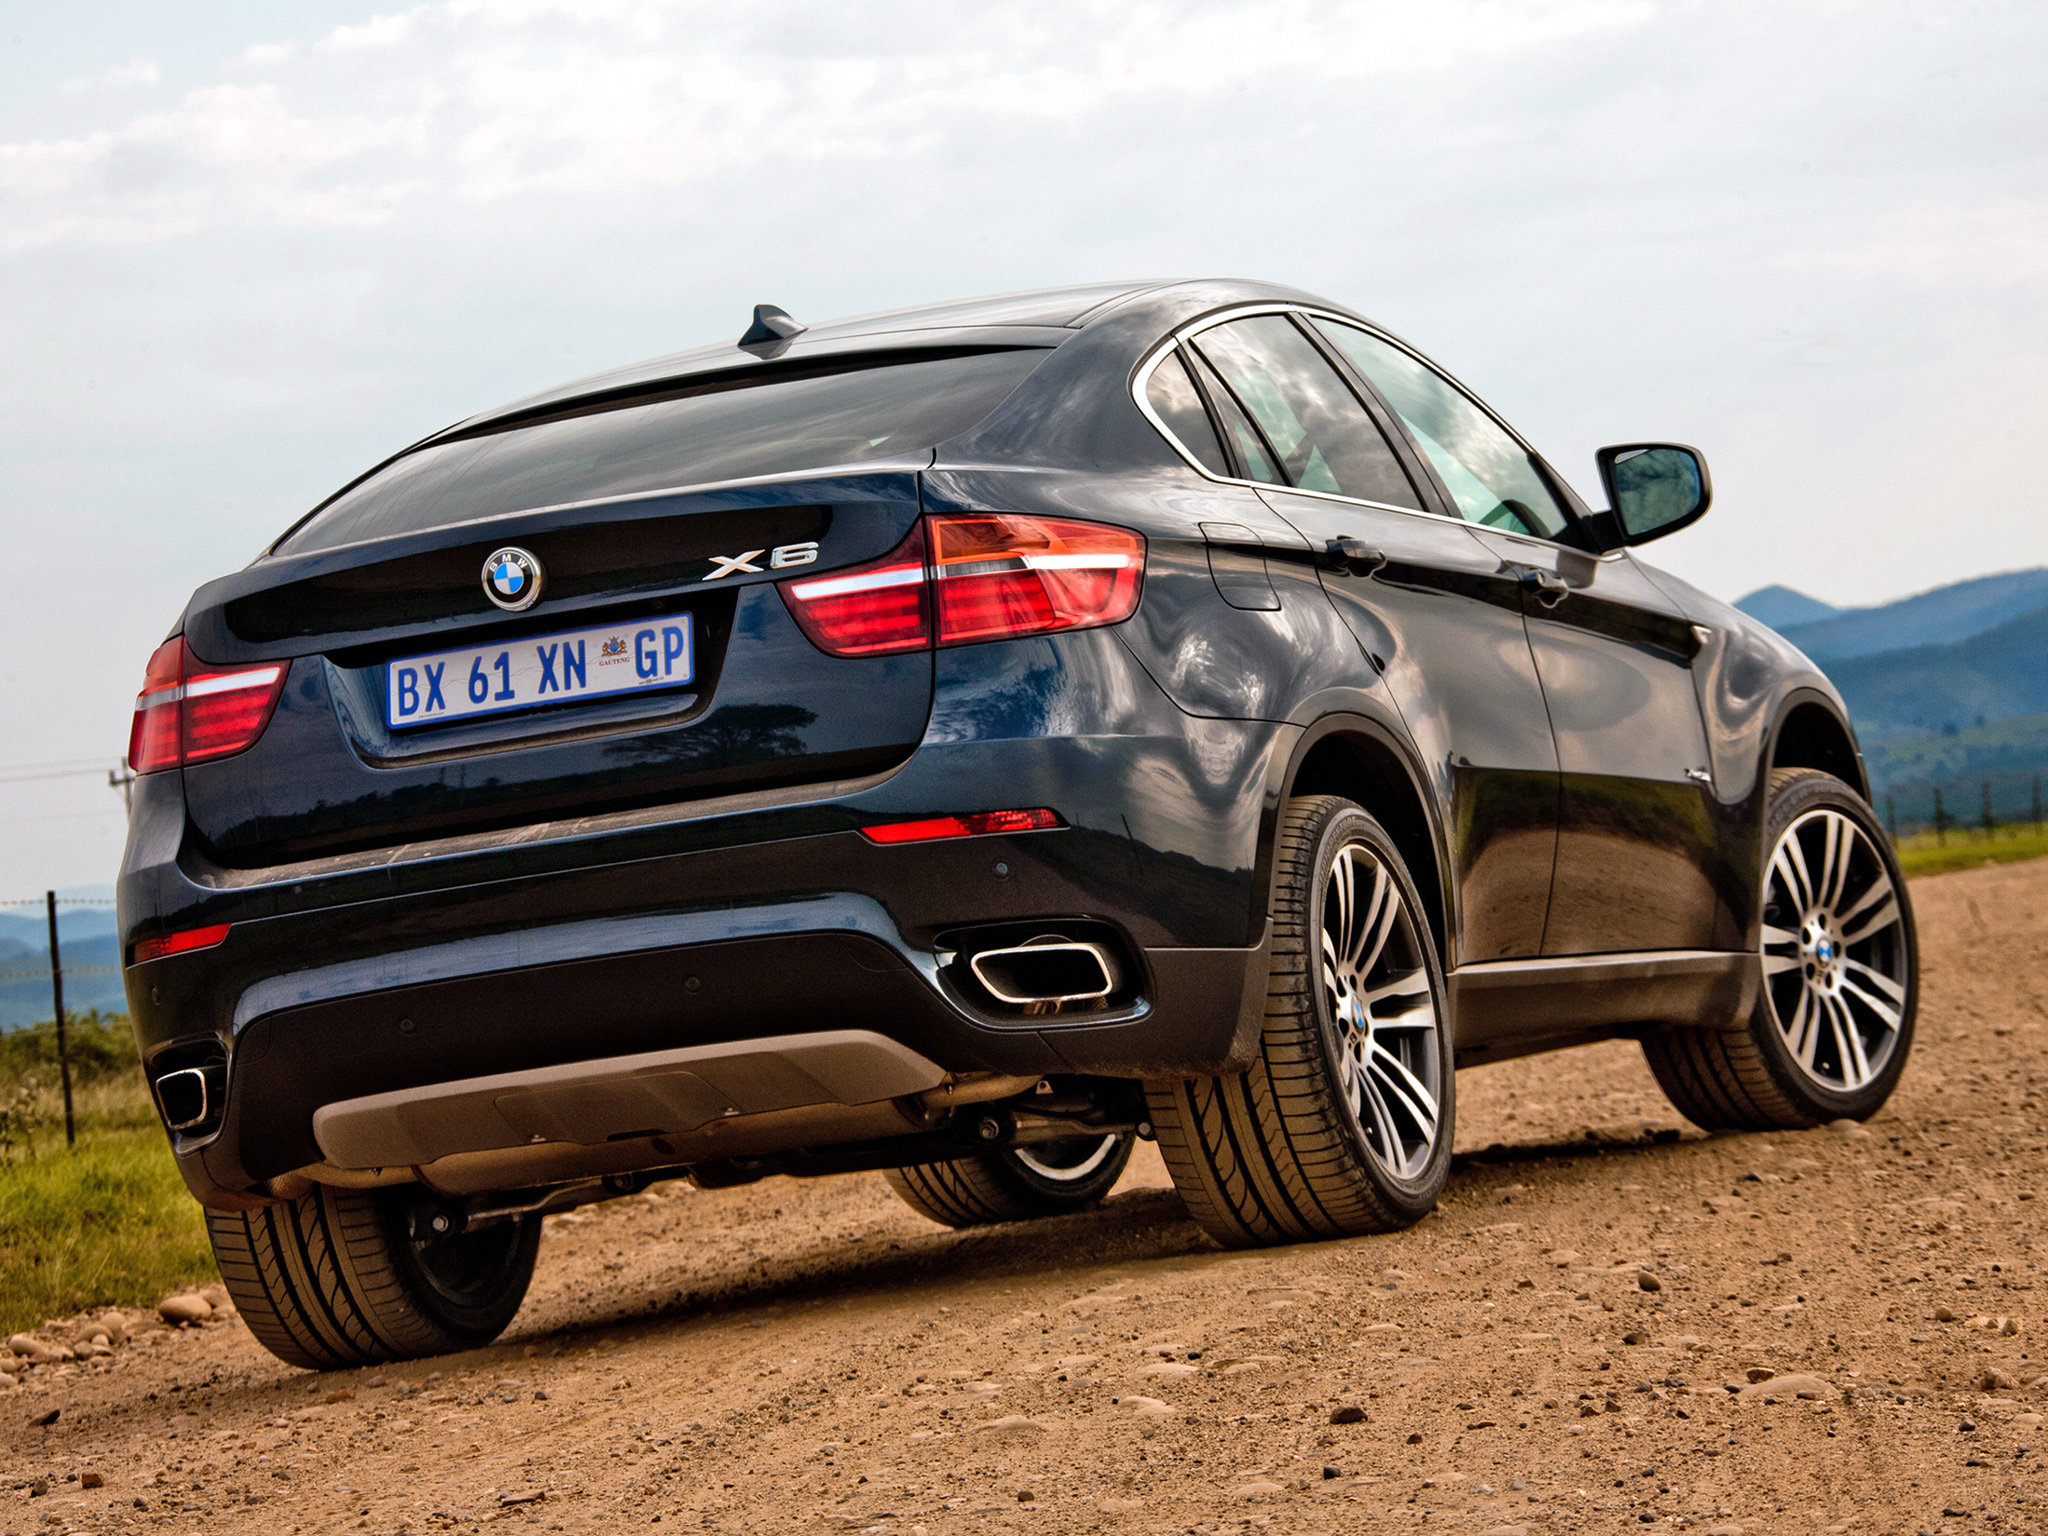 Bmw X6 Xdrive50i Photos Photogallery With 22 Pics